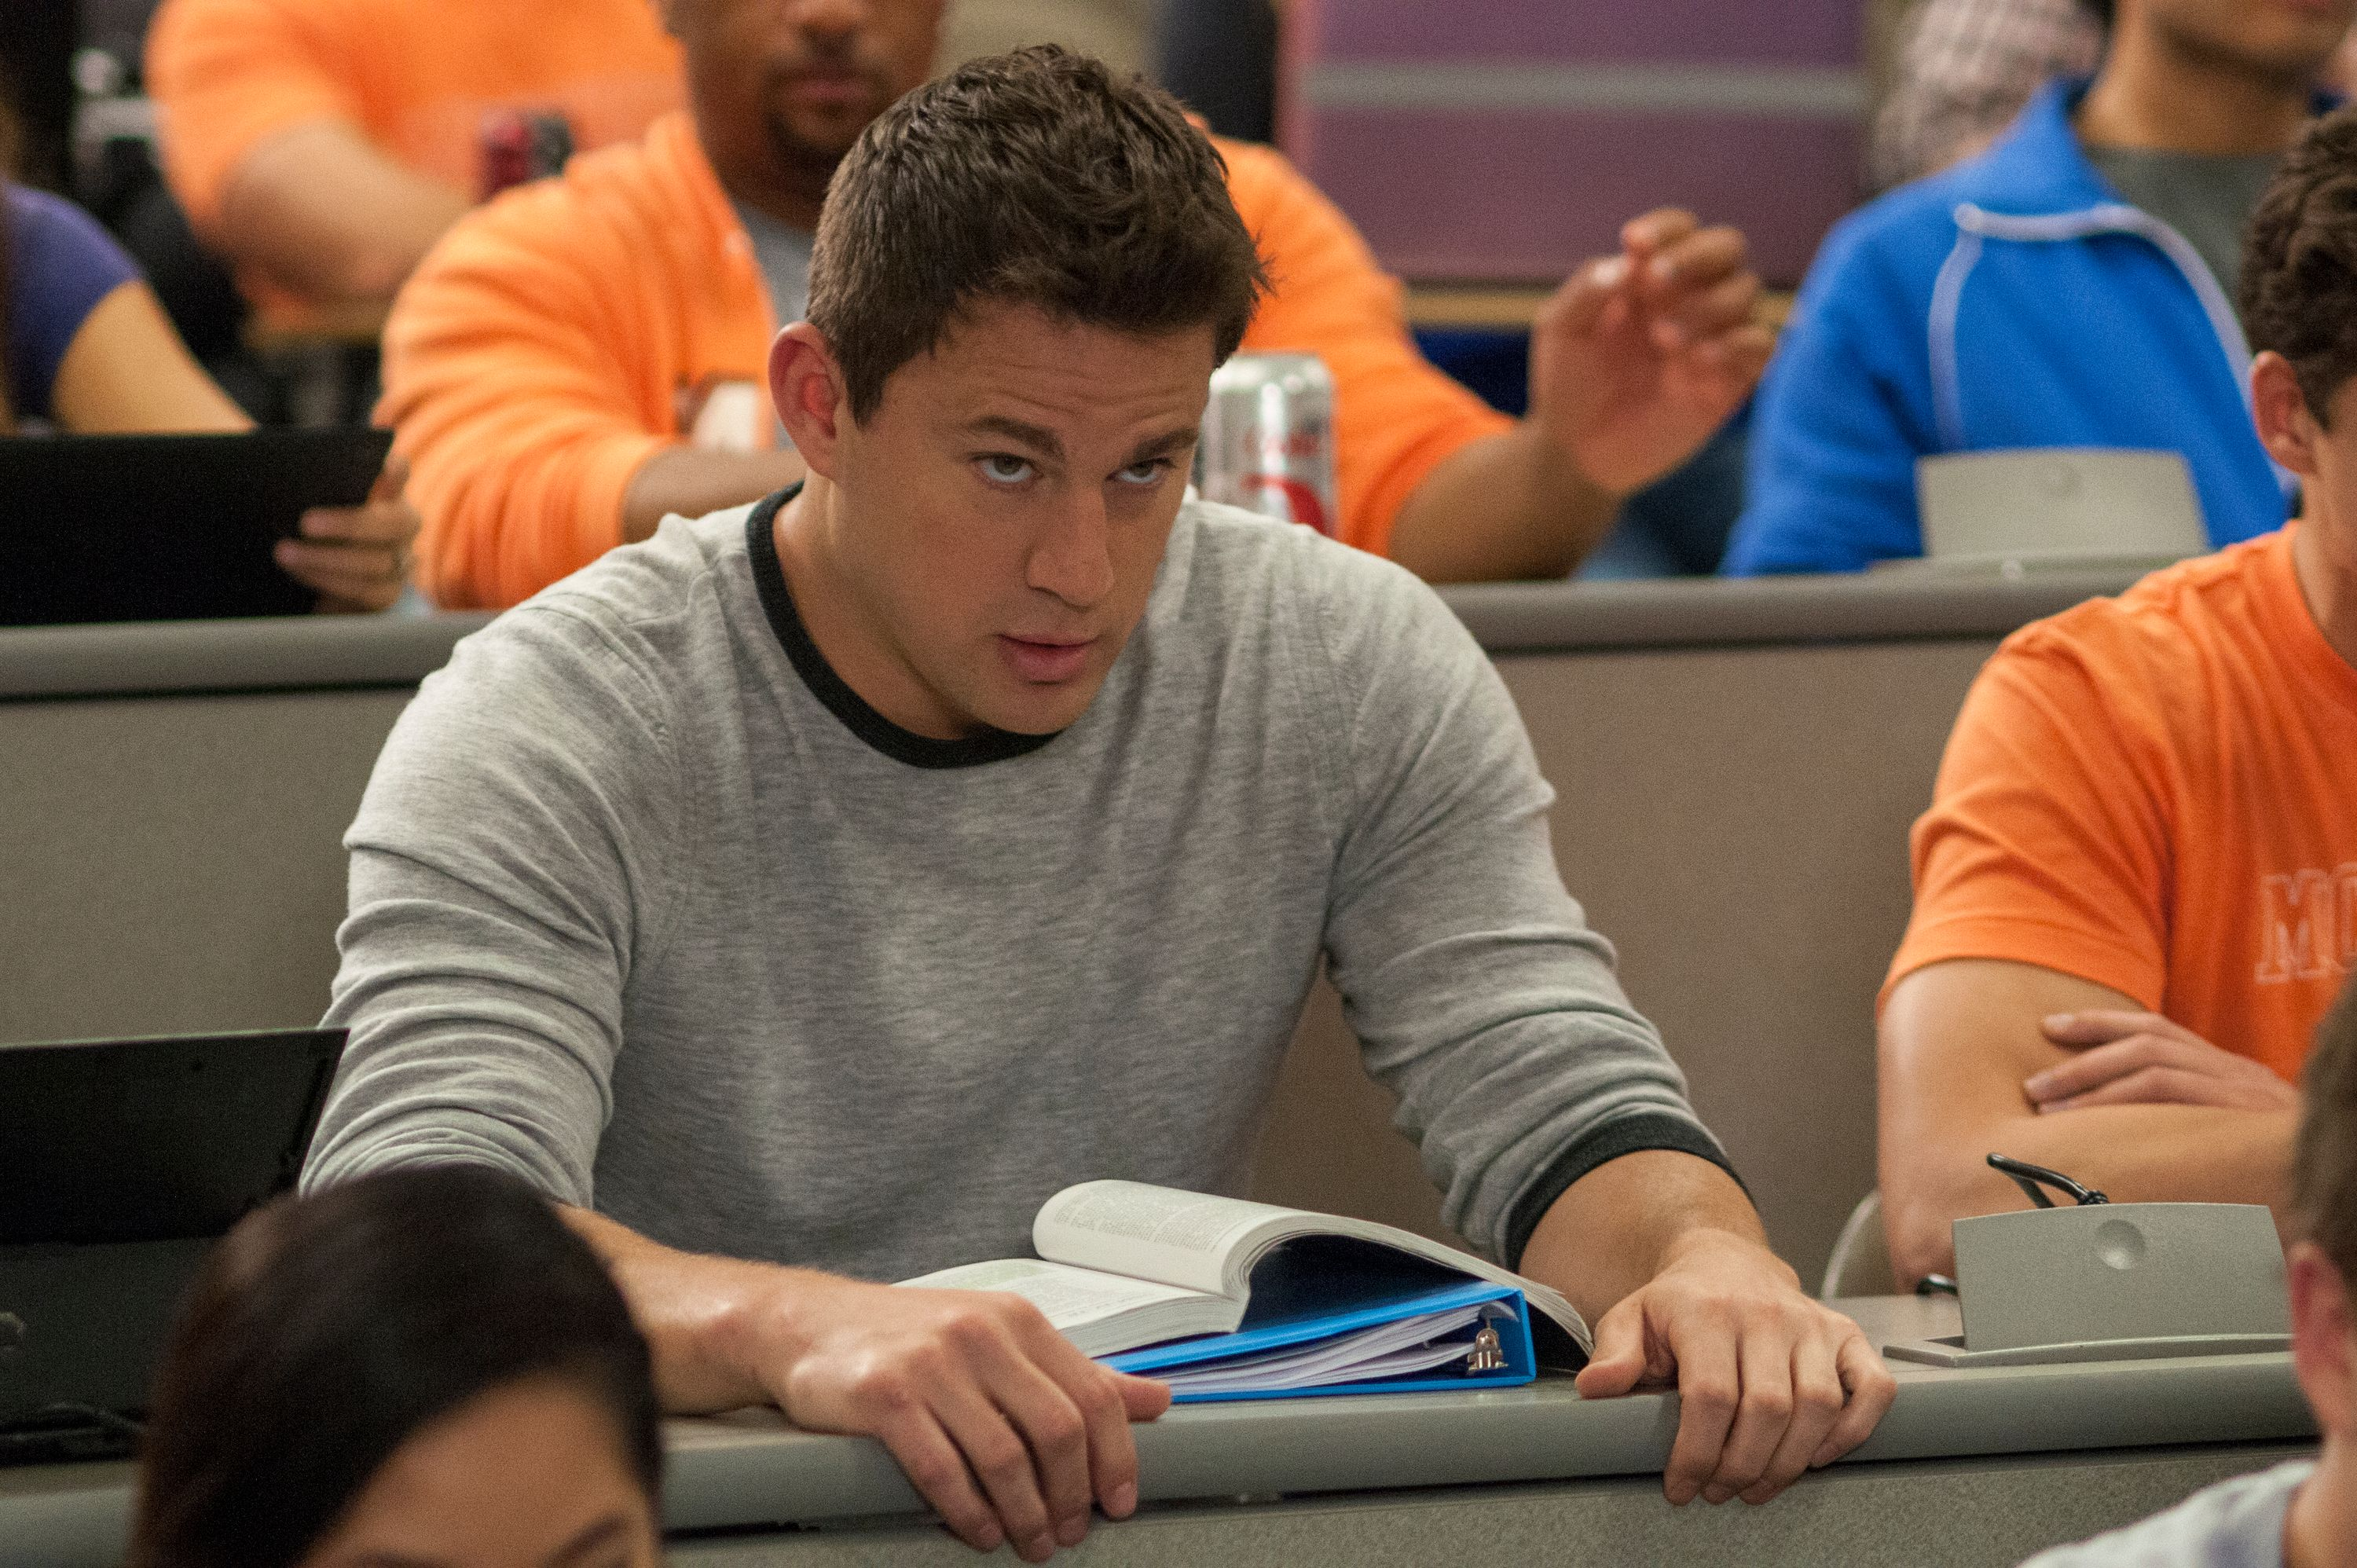 22 jump street images and featurette with channing tatum